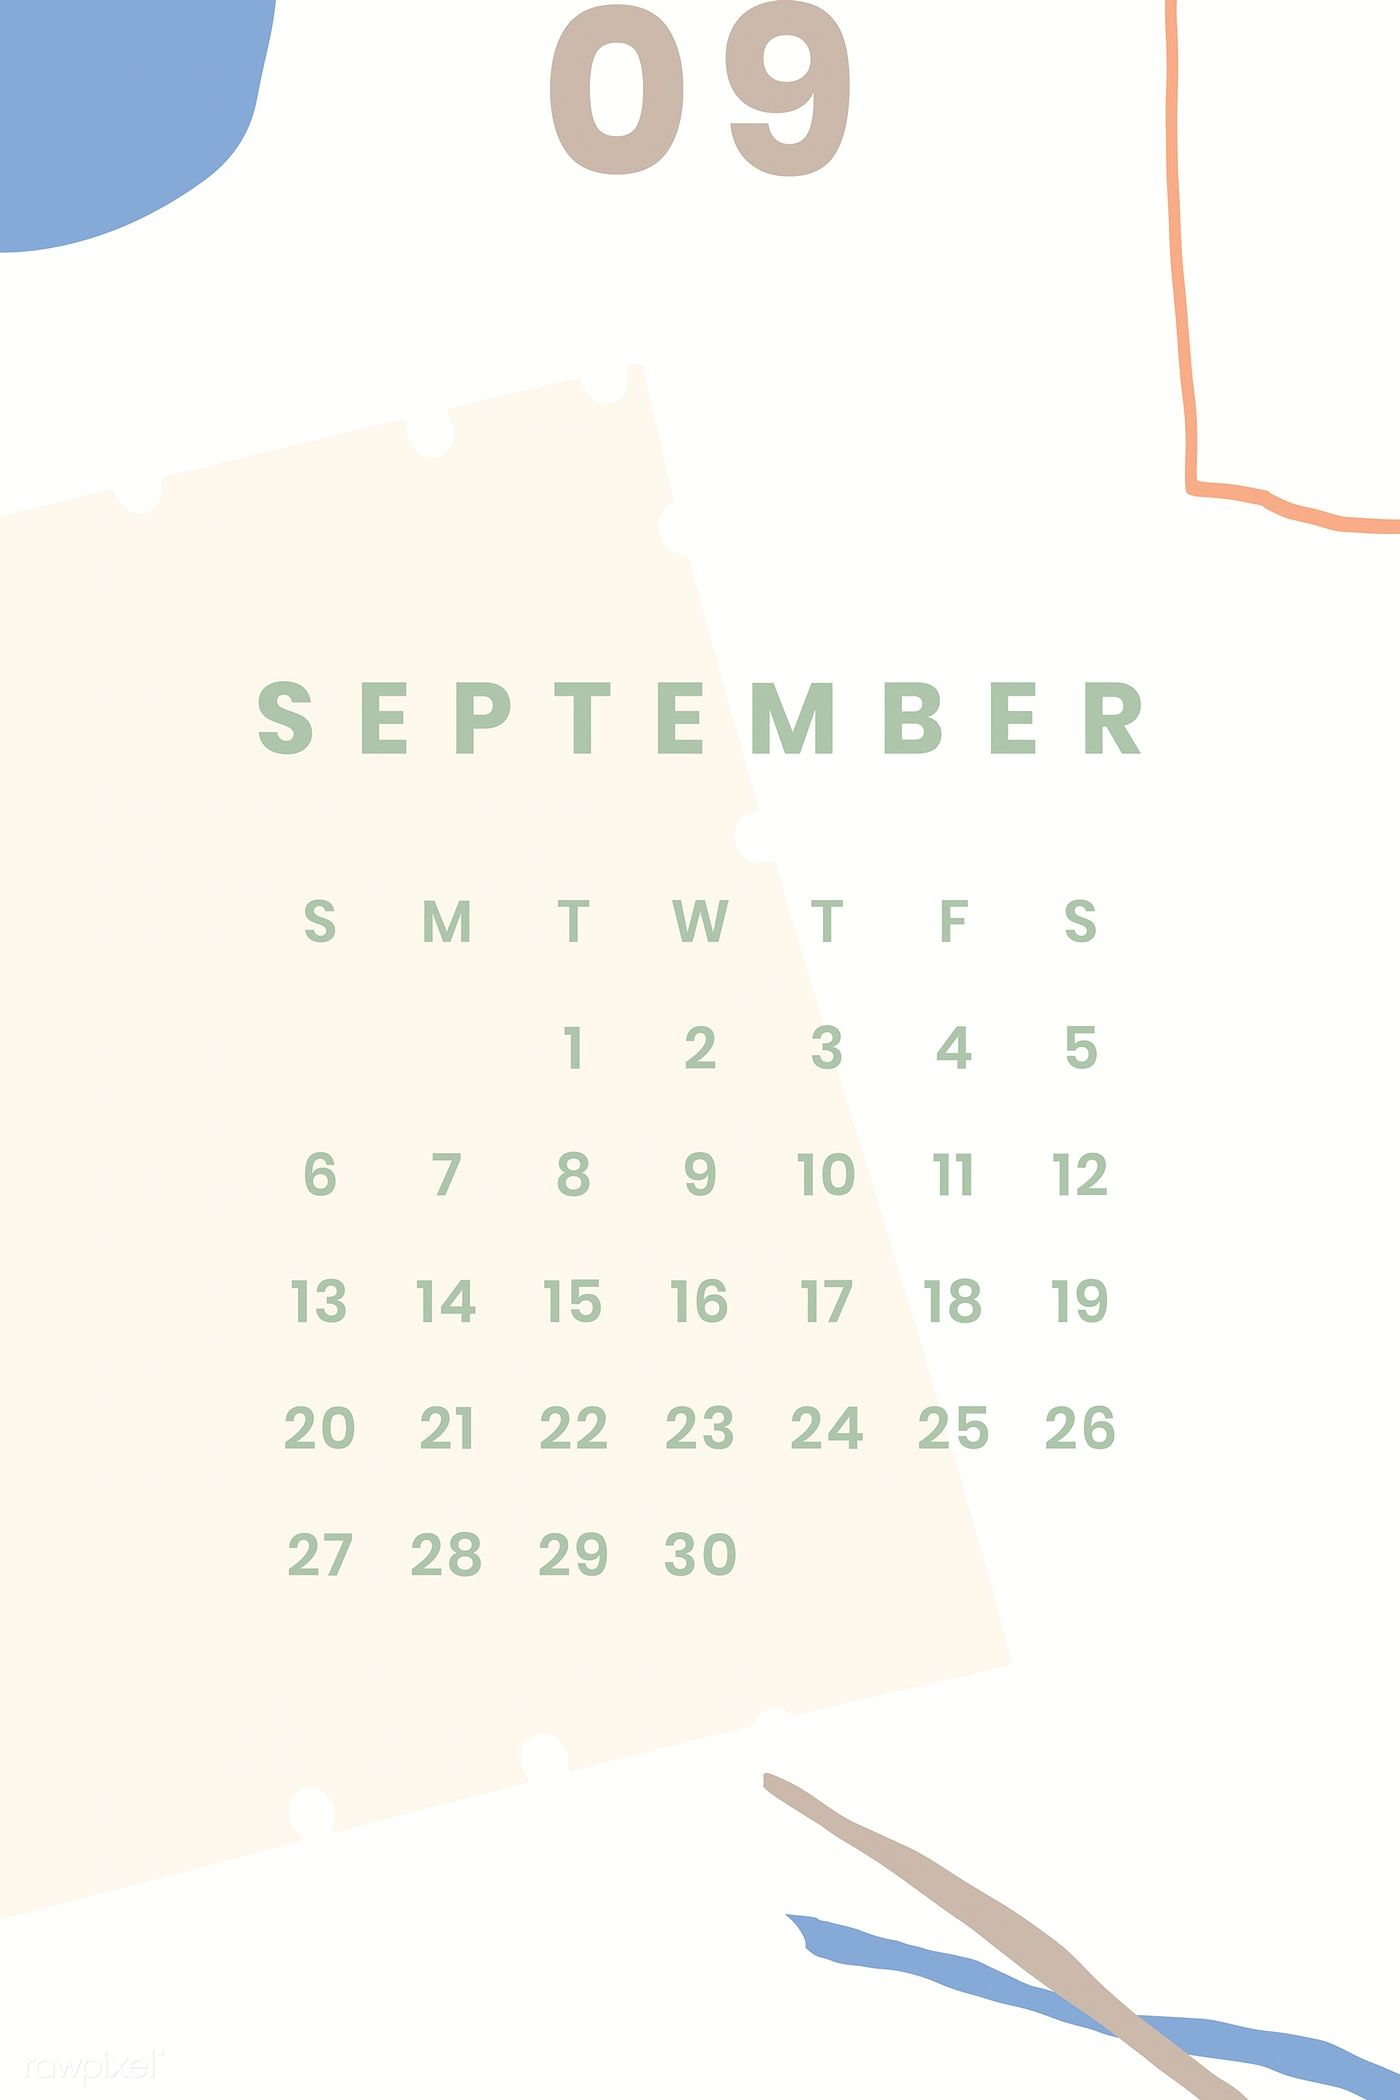 Download premium vector of Colorful September calendar